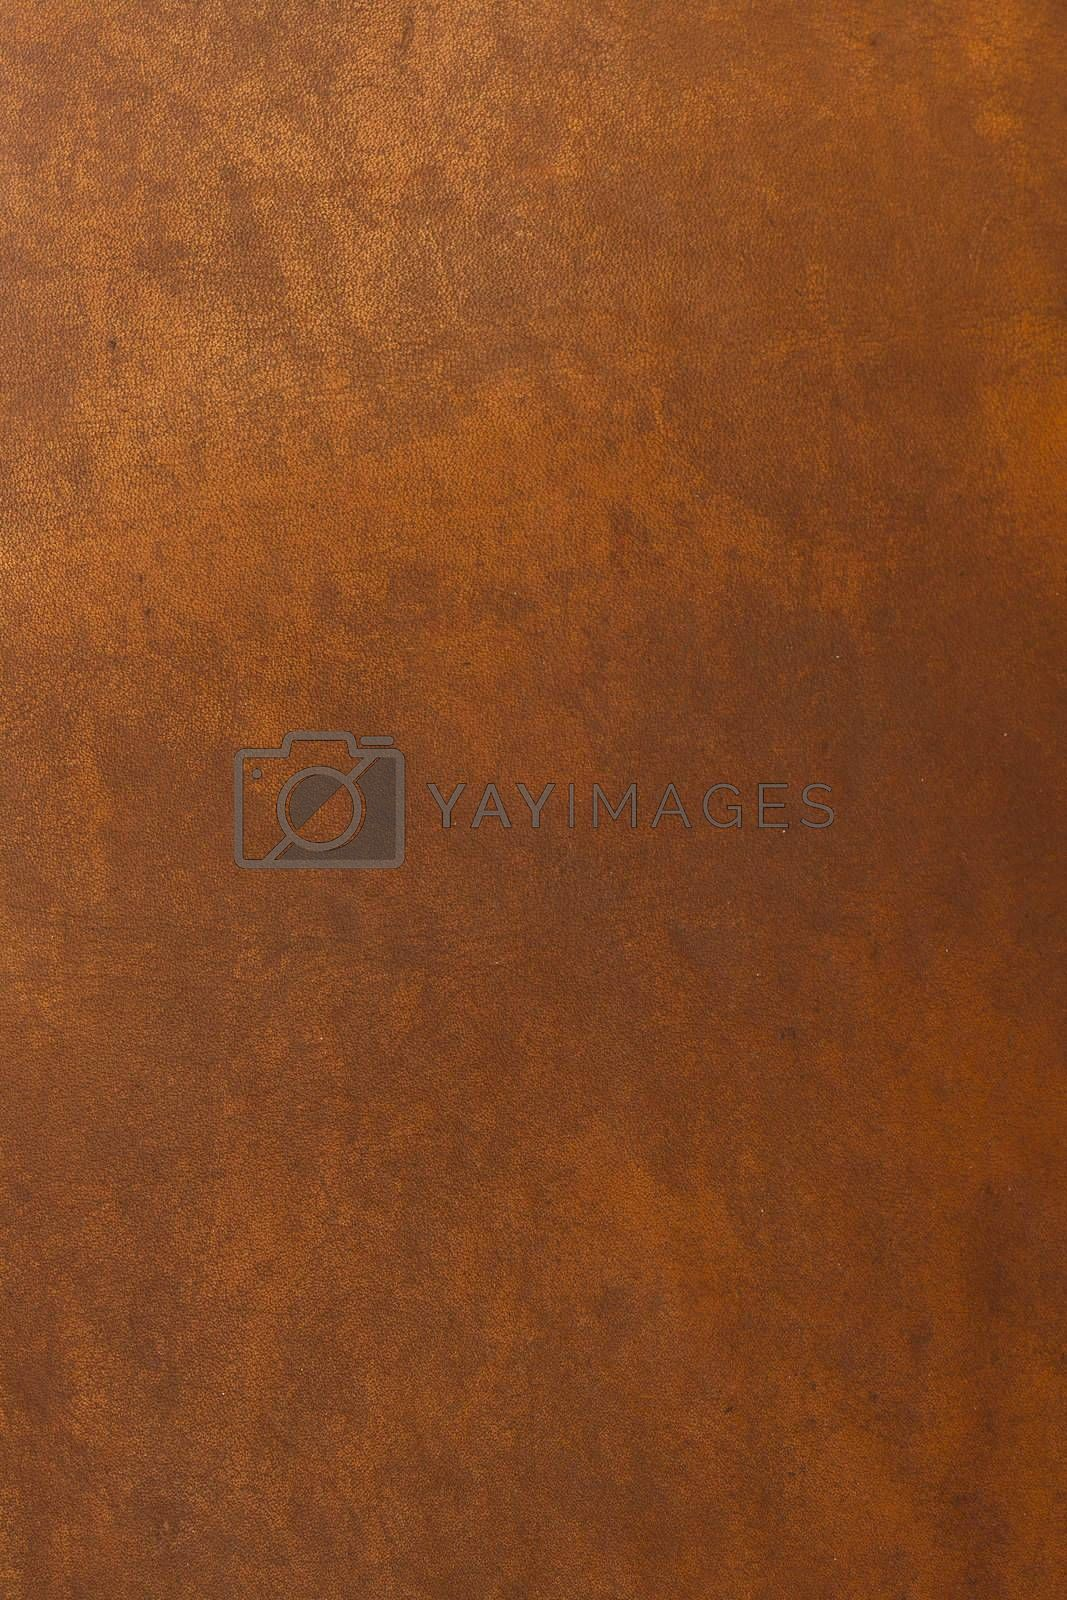 Close-up photograph of leather